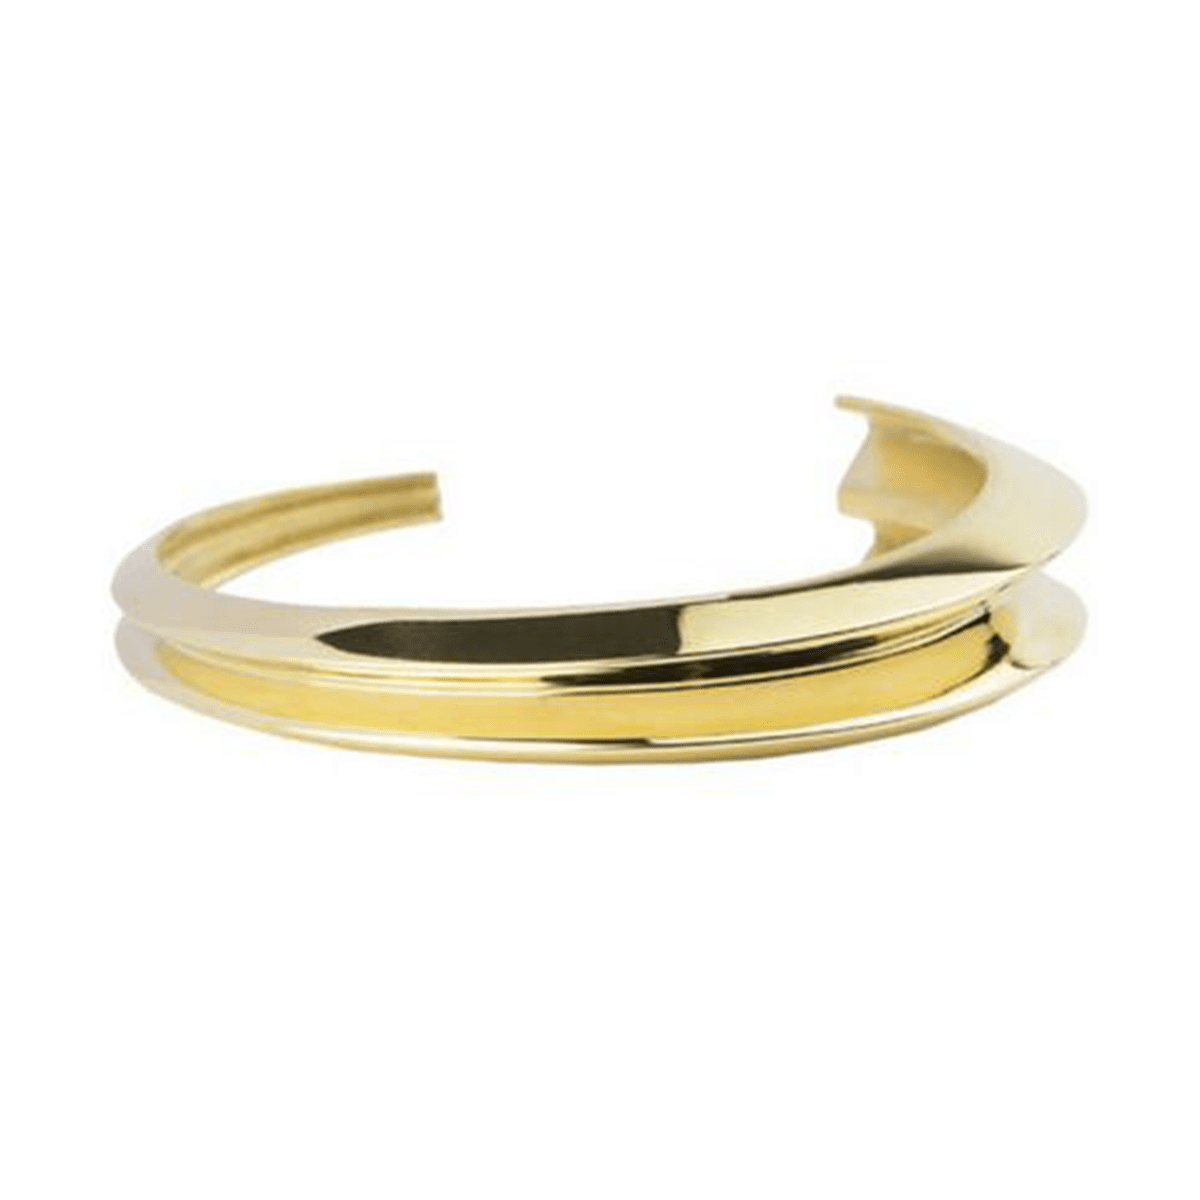 Statement-Making 18k Gold-Plated Cuff Bracelet